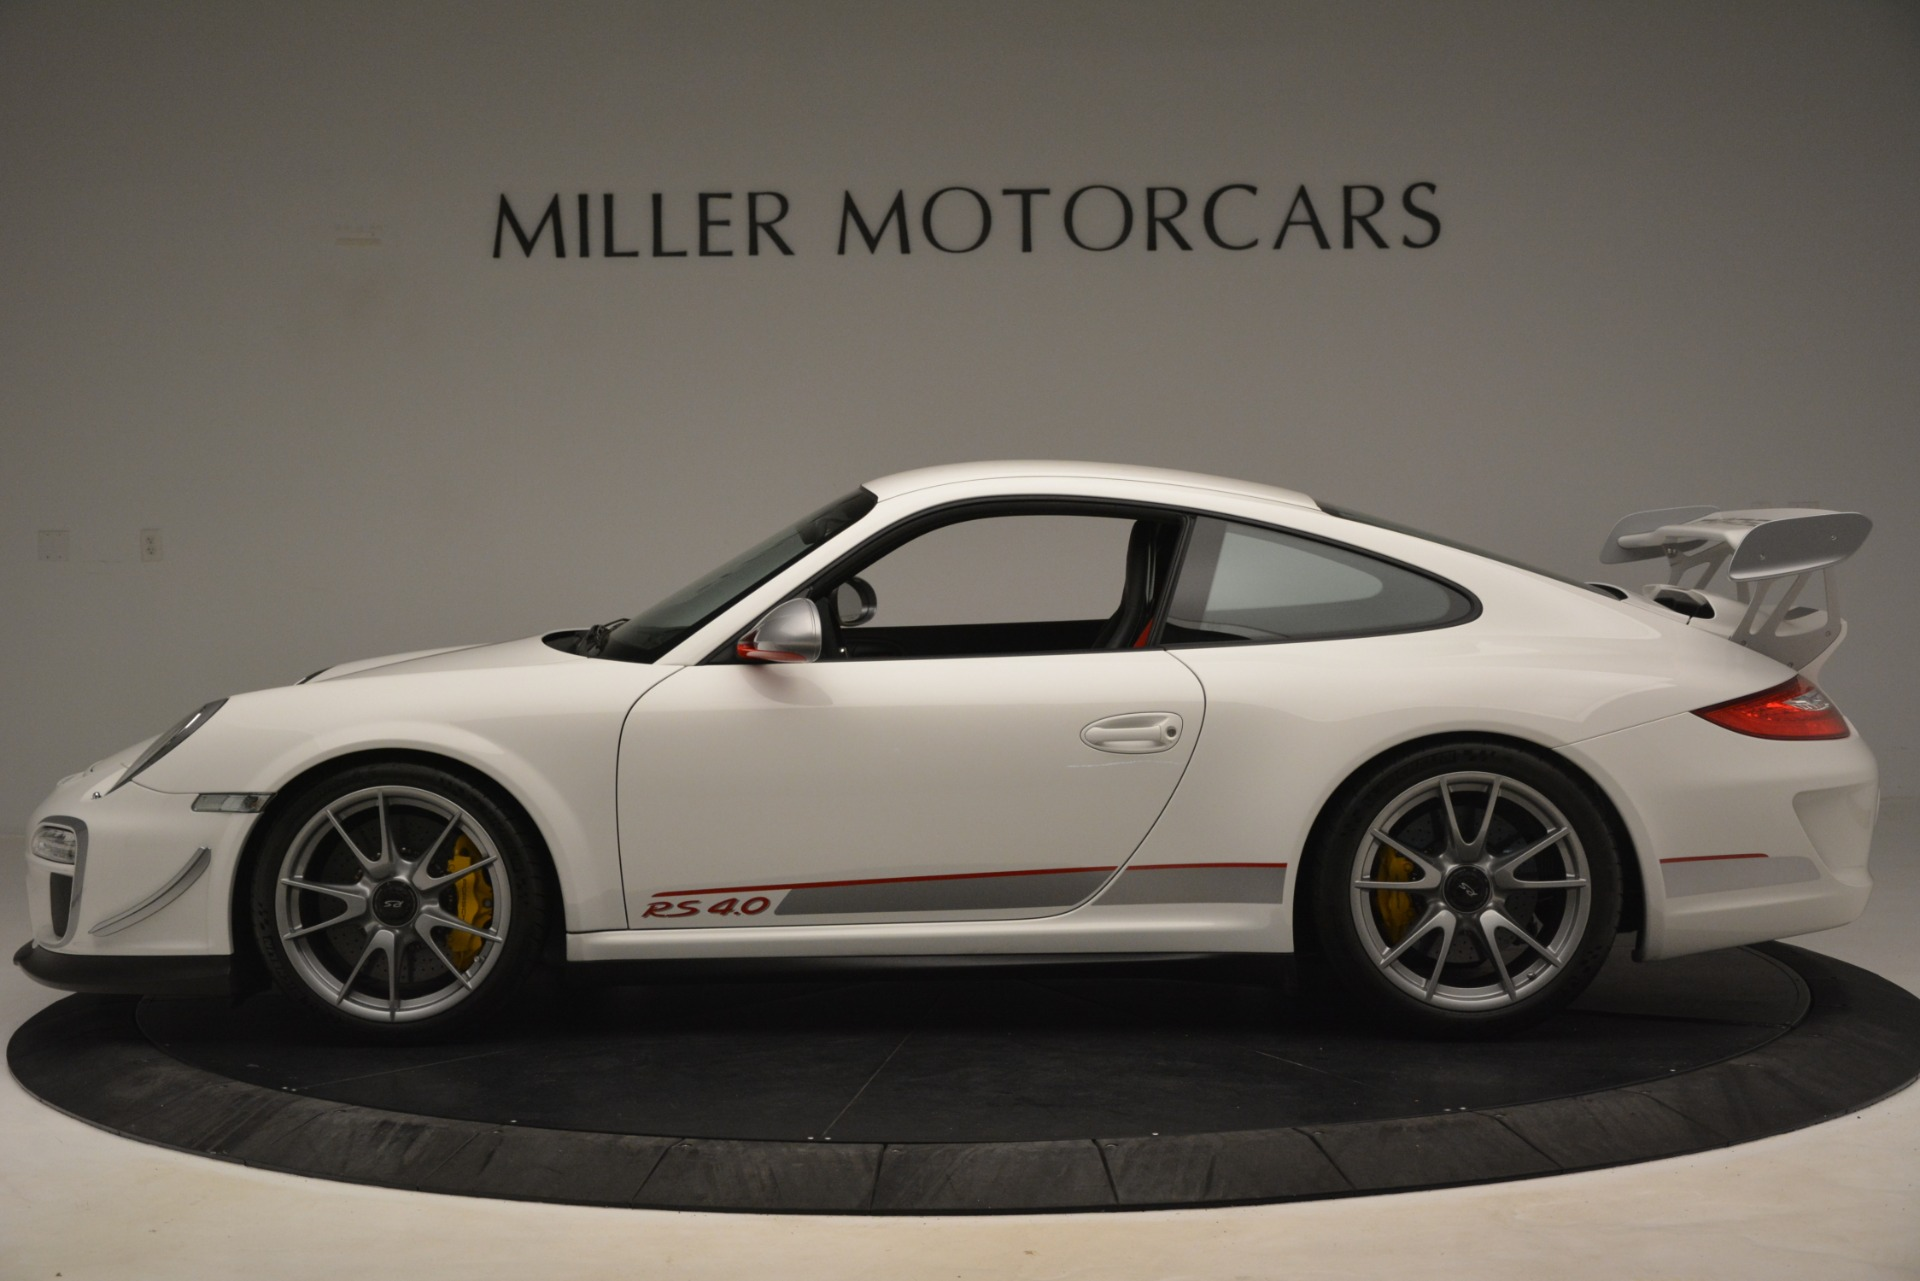 Used 2011 Porsche 911 GT3 RS 4.0 For Sale In Greenwich, CT 3188_p3